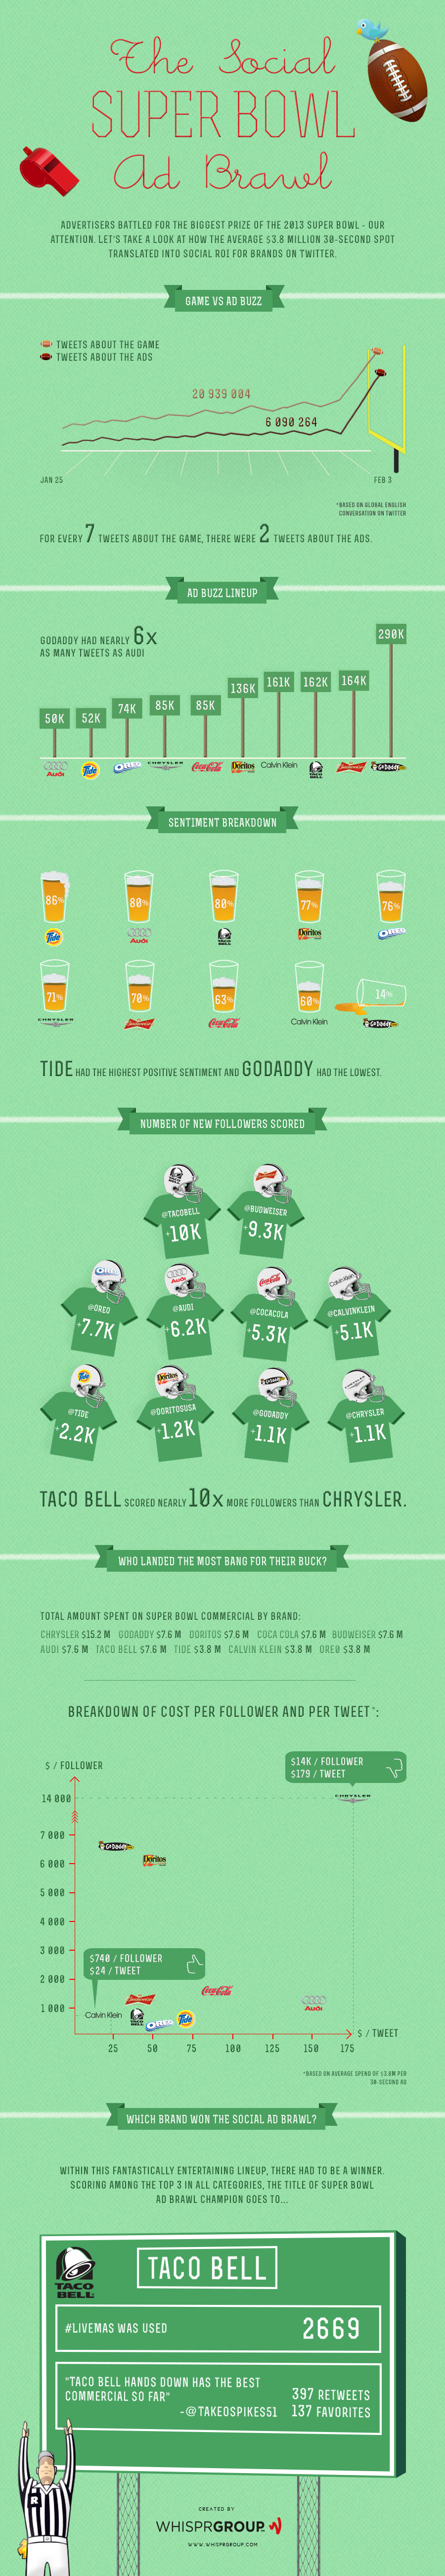 super-bowl-infographic